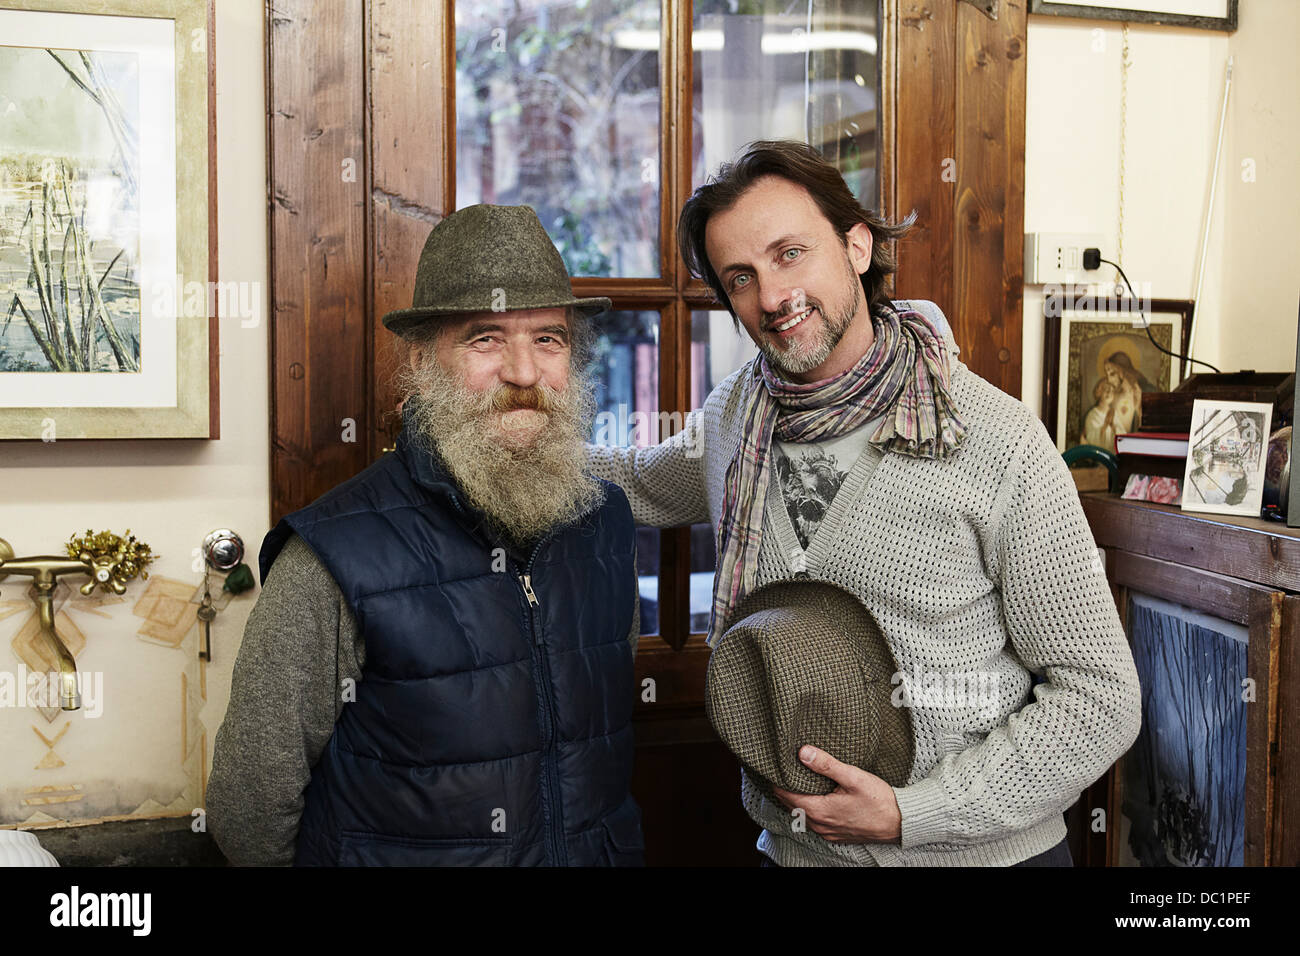 Senior and mid adult man in antique shop, portrait - Stock Image